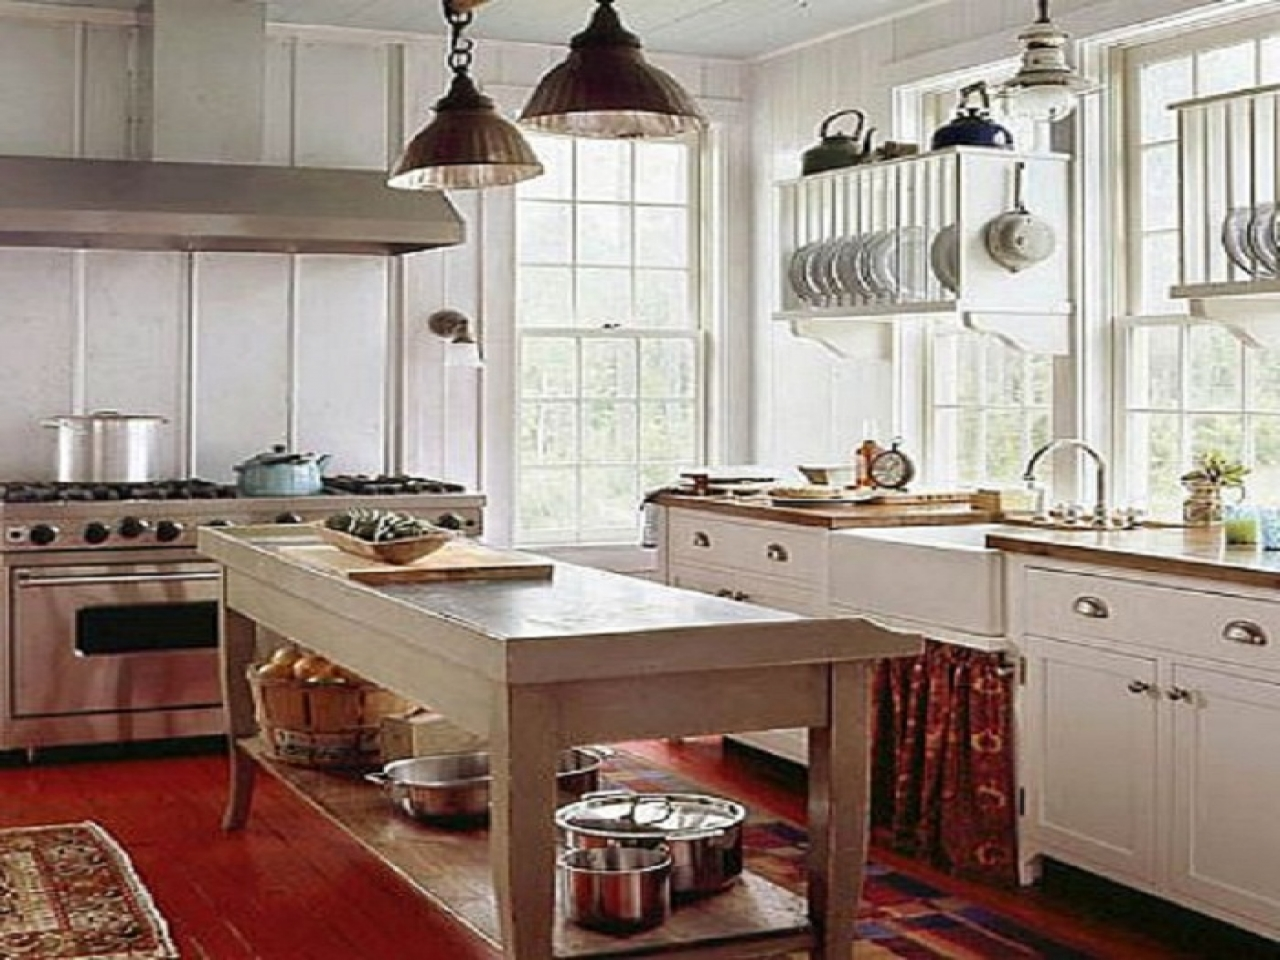 Kitchen Photos Small Country Cottage Decorating Ideas